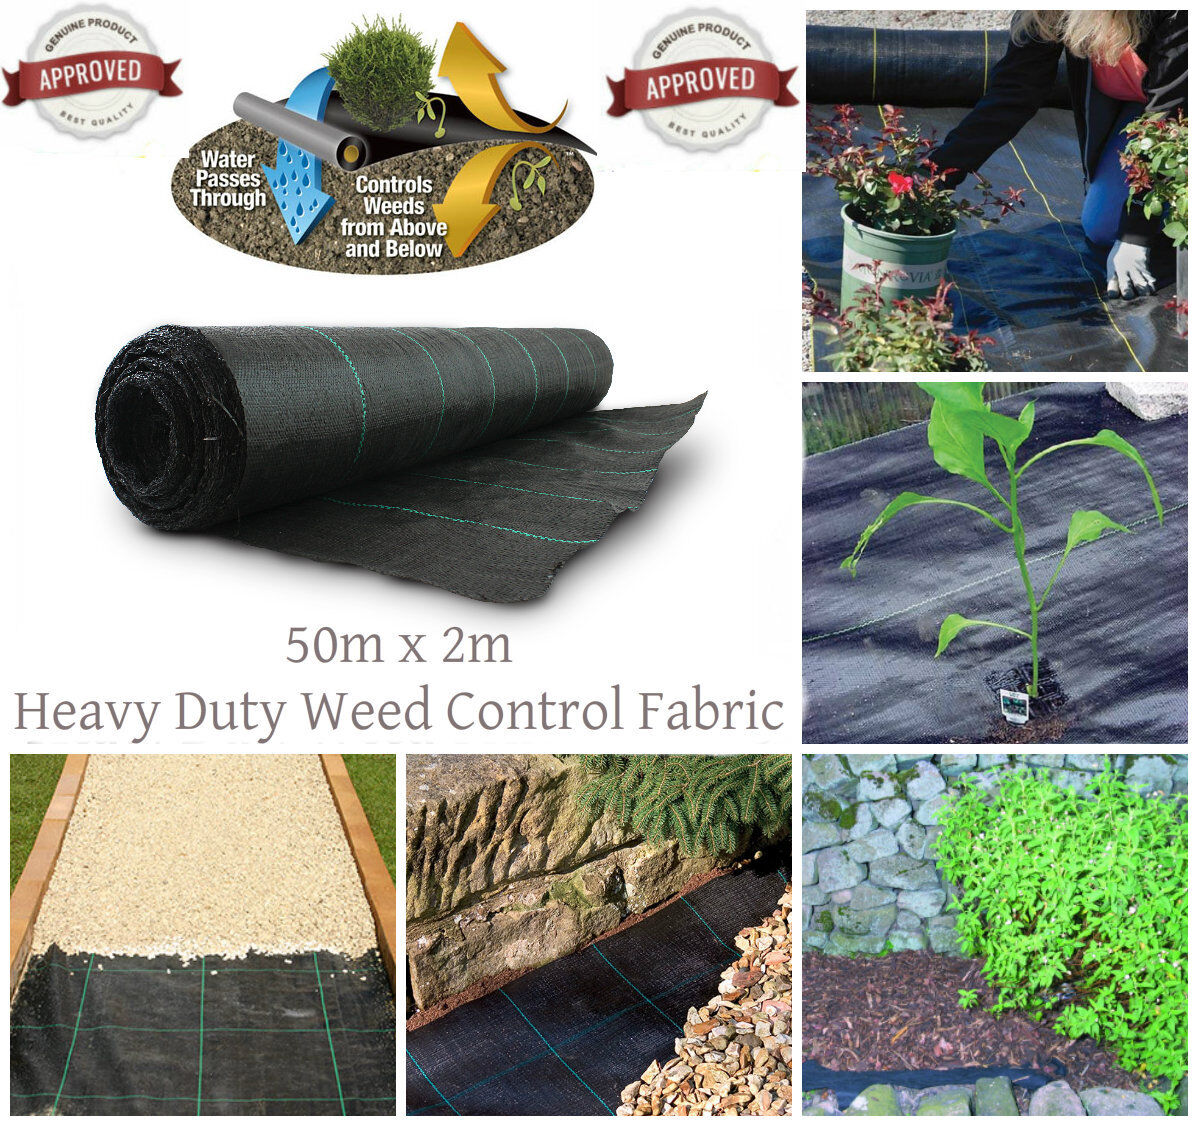 Heavy Duty Cloth : New heavy duty weed control woven fabric ground cover